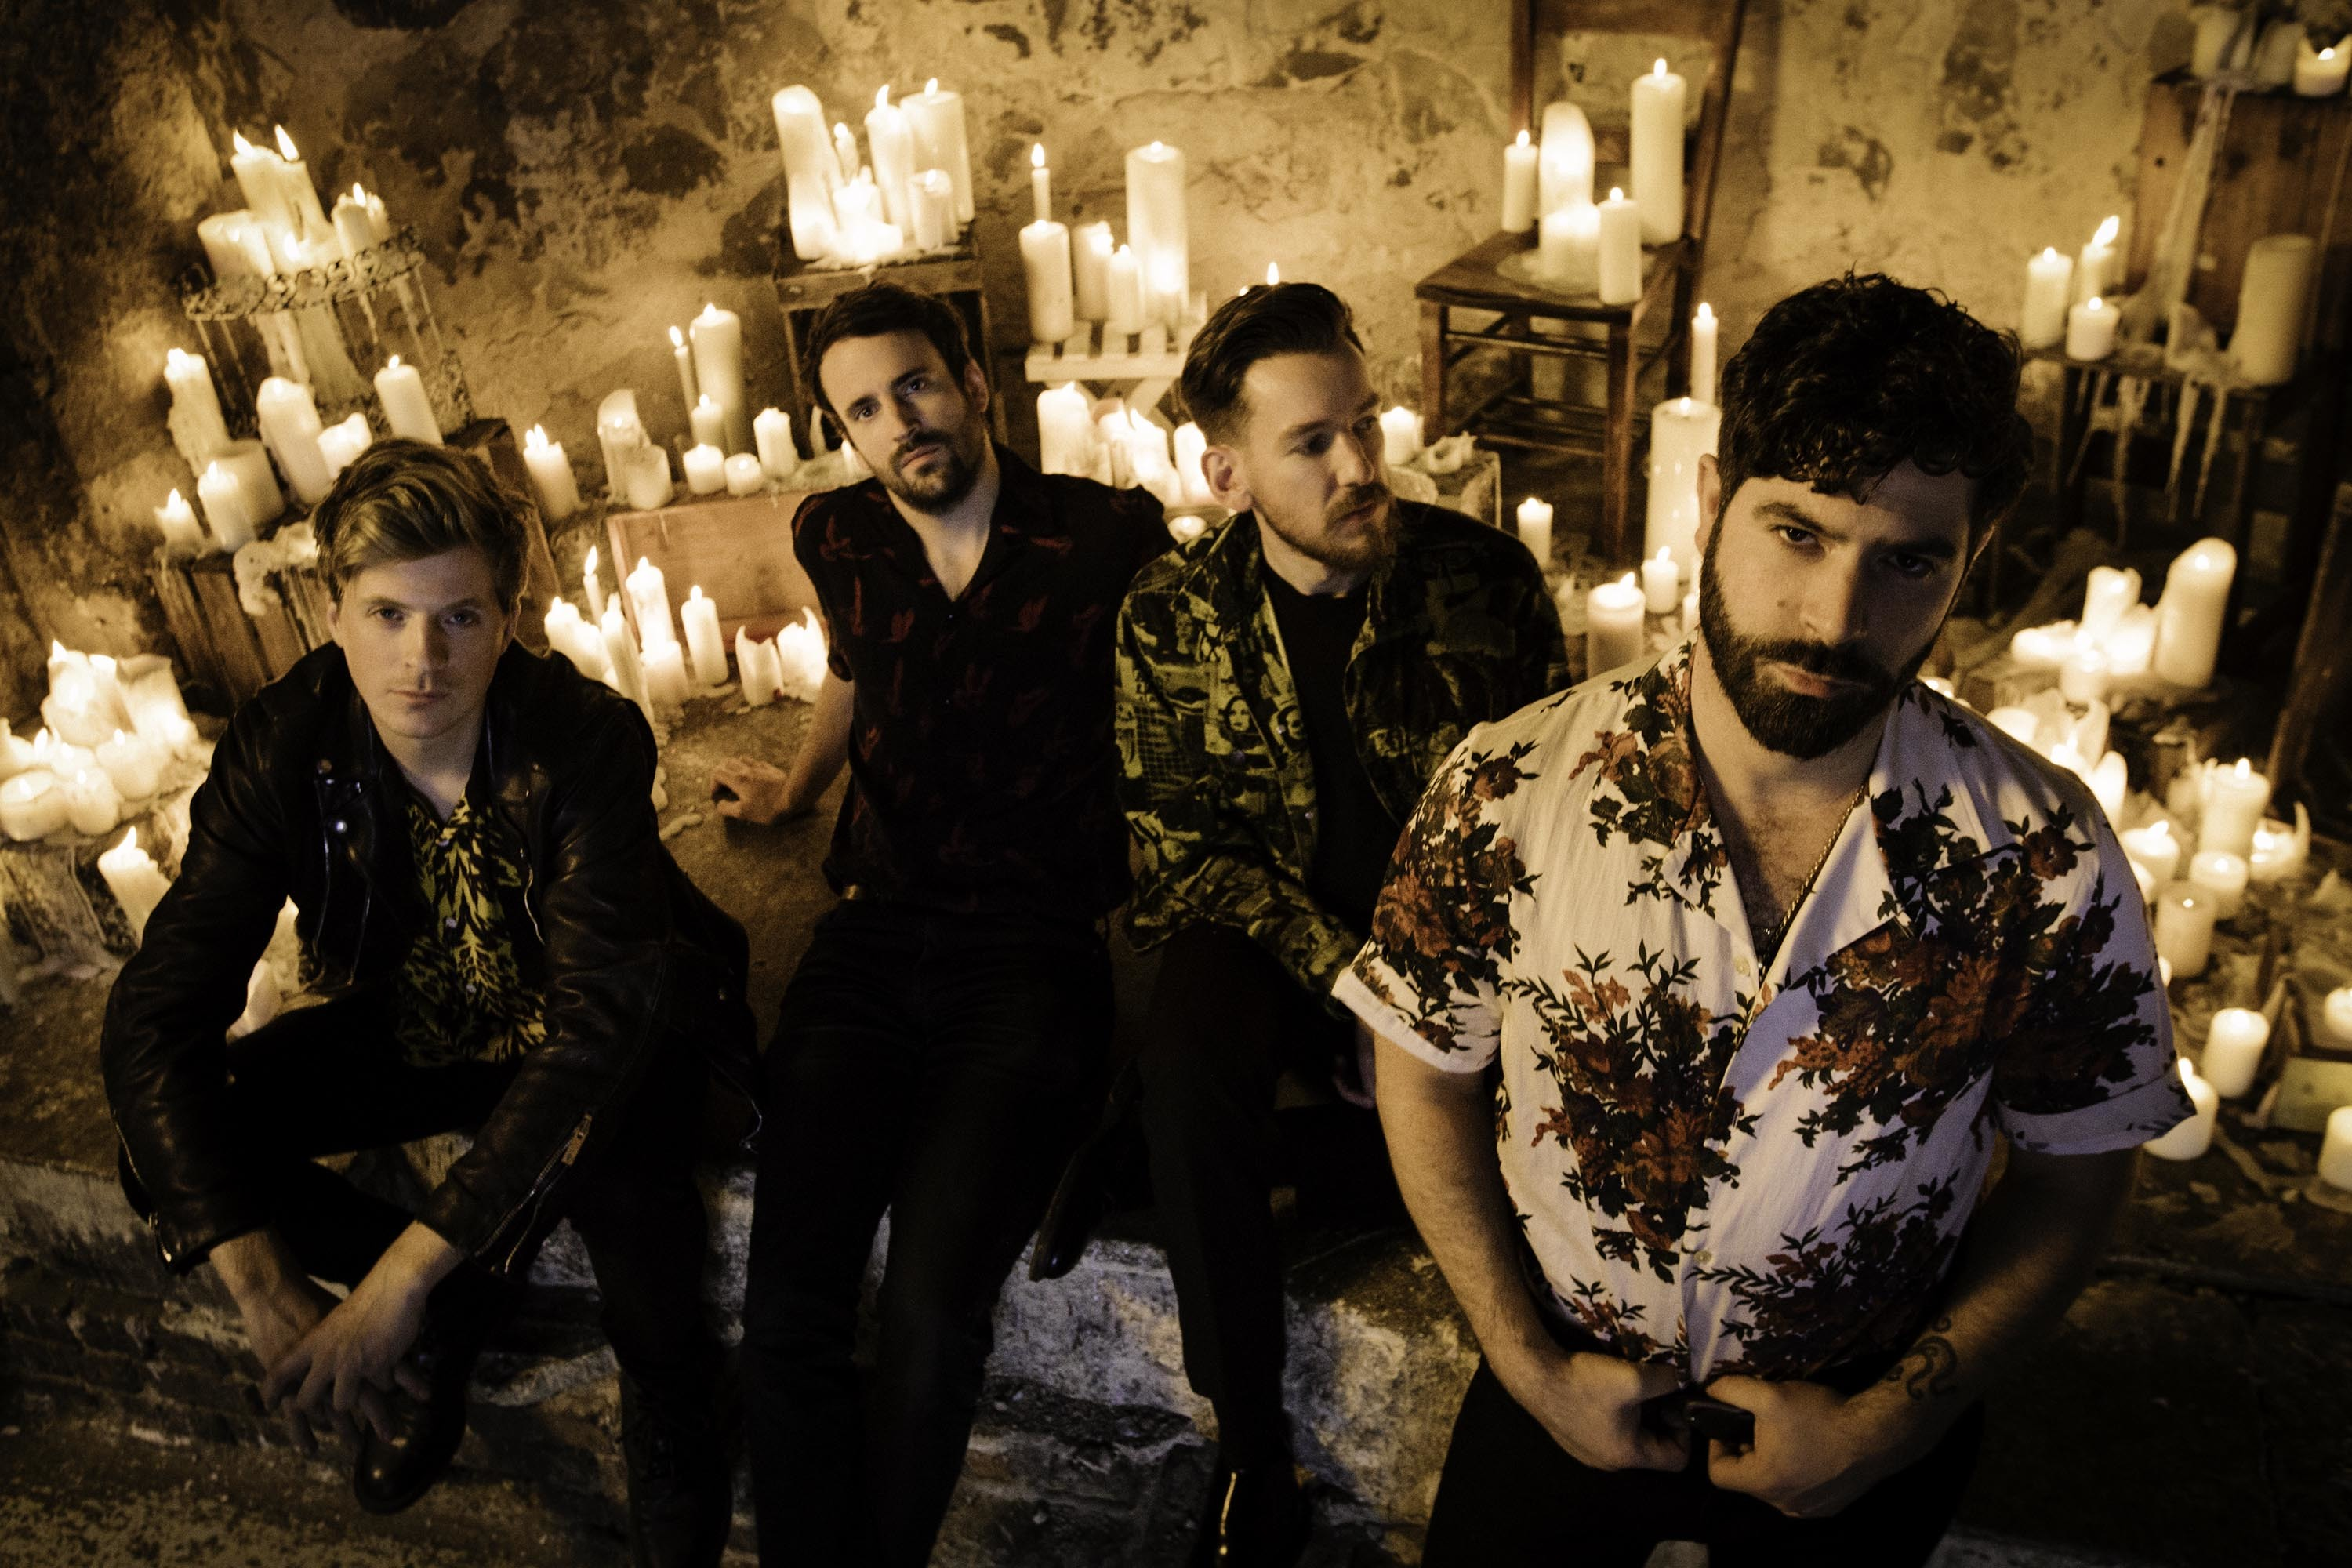 Yannis is chased by evil doppelgänger in Foals' intense 'The Runner' video